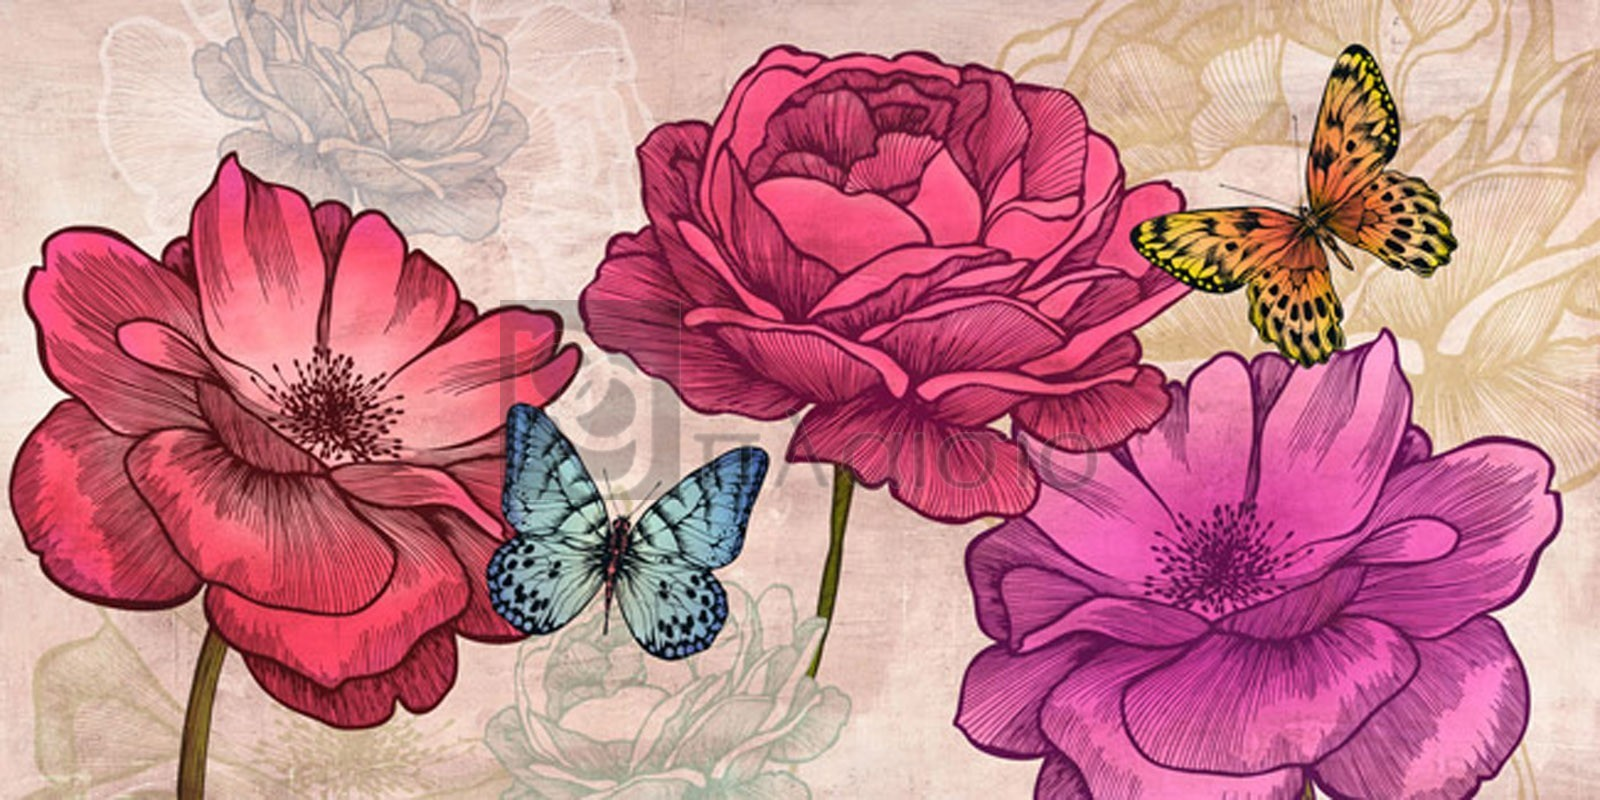 Eve C. Grant - Roses and Butterflies (Neutral)